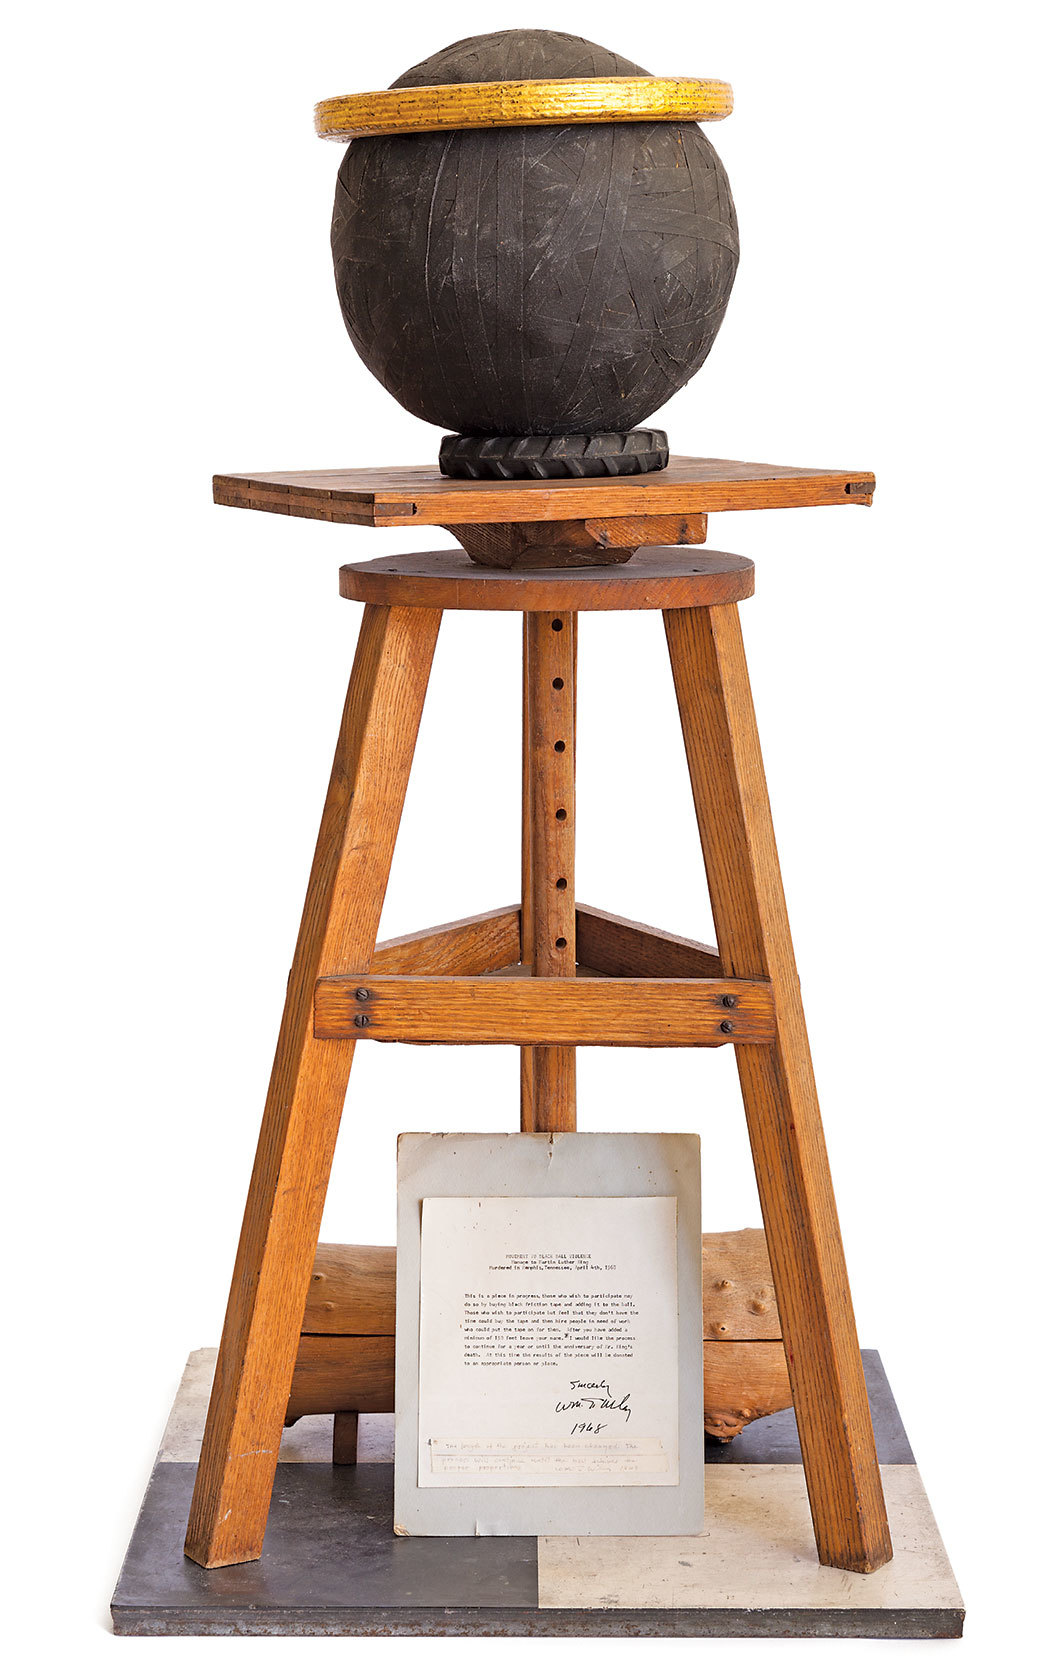 "William T. Wiley, Movement to Blackball Violence (Homage to Martin Luther King), 1968, black friction tape, wooden stool, gold leaf, rubber tricycle tires, carved wooden log by H. C. Westermann, paper and tape on board, linoleum flooring, 50 × 24 × 24""."